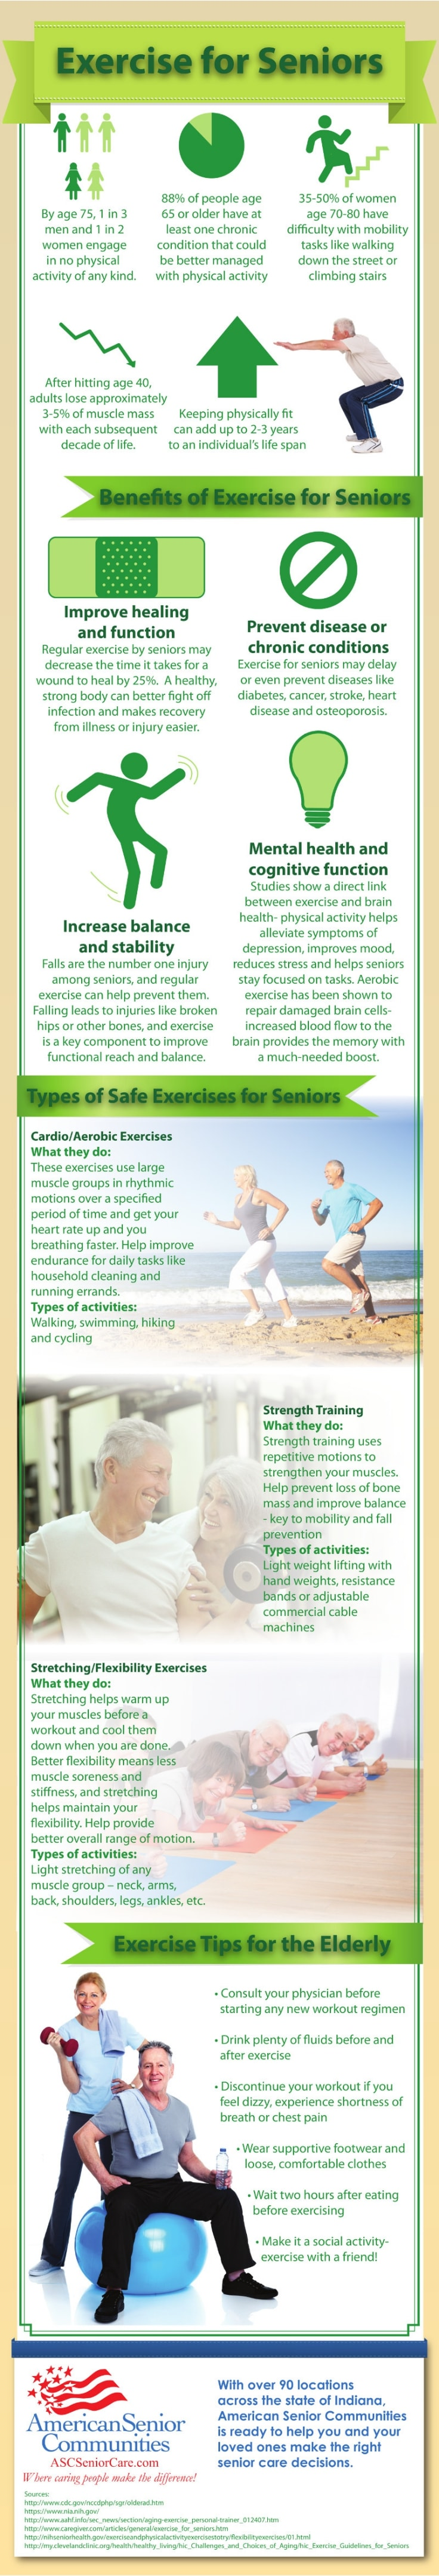 Aging Gracefully With Exercise Infographic